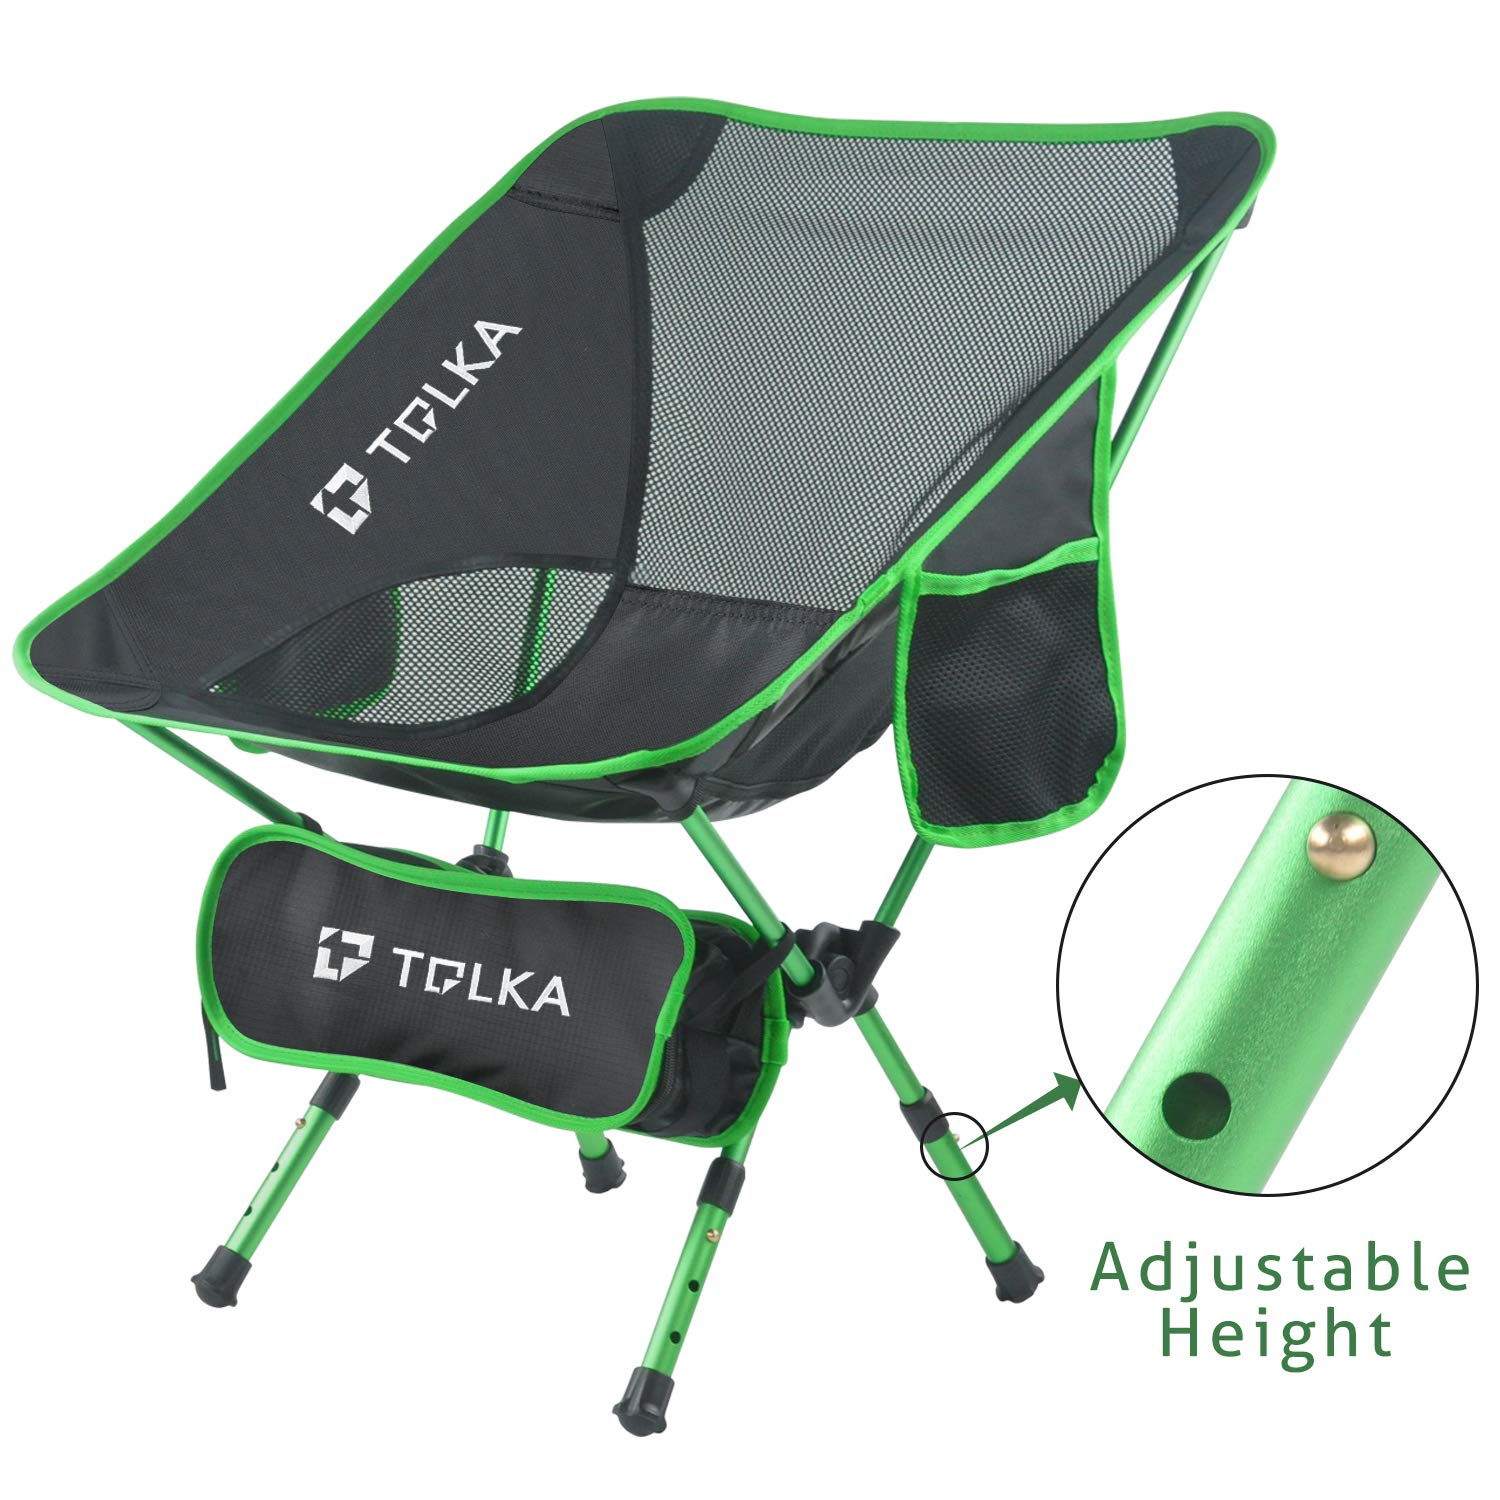 Tolka Portable Camping Chair Adjustable Height Lightweight, Compact, Heavy Duty 330lbs Capacity Camping Folding Chairs Backpacking Chair Beach Chairs Lawn Chairs For Camping, Traveling, Beach